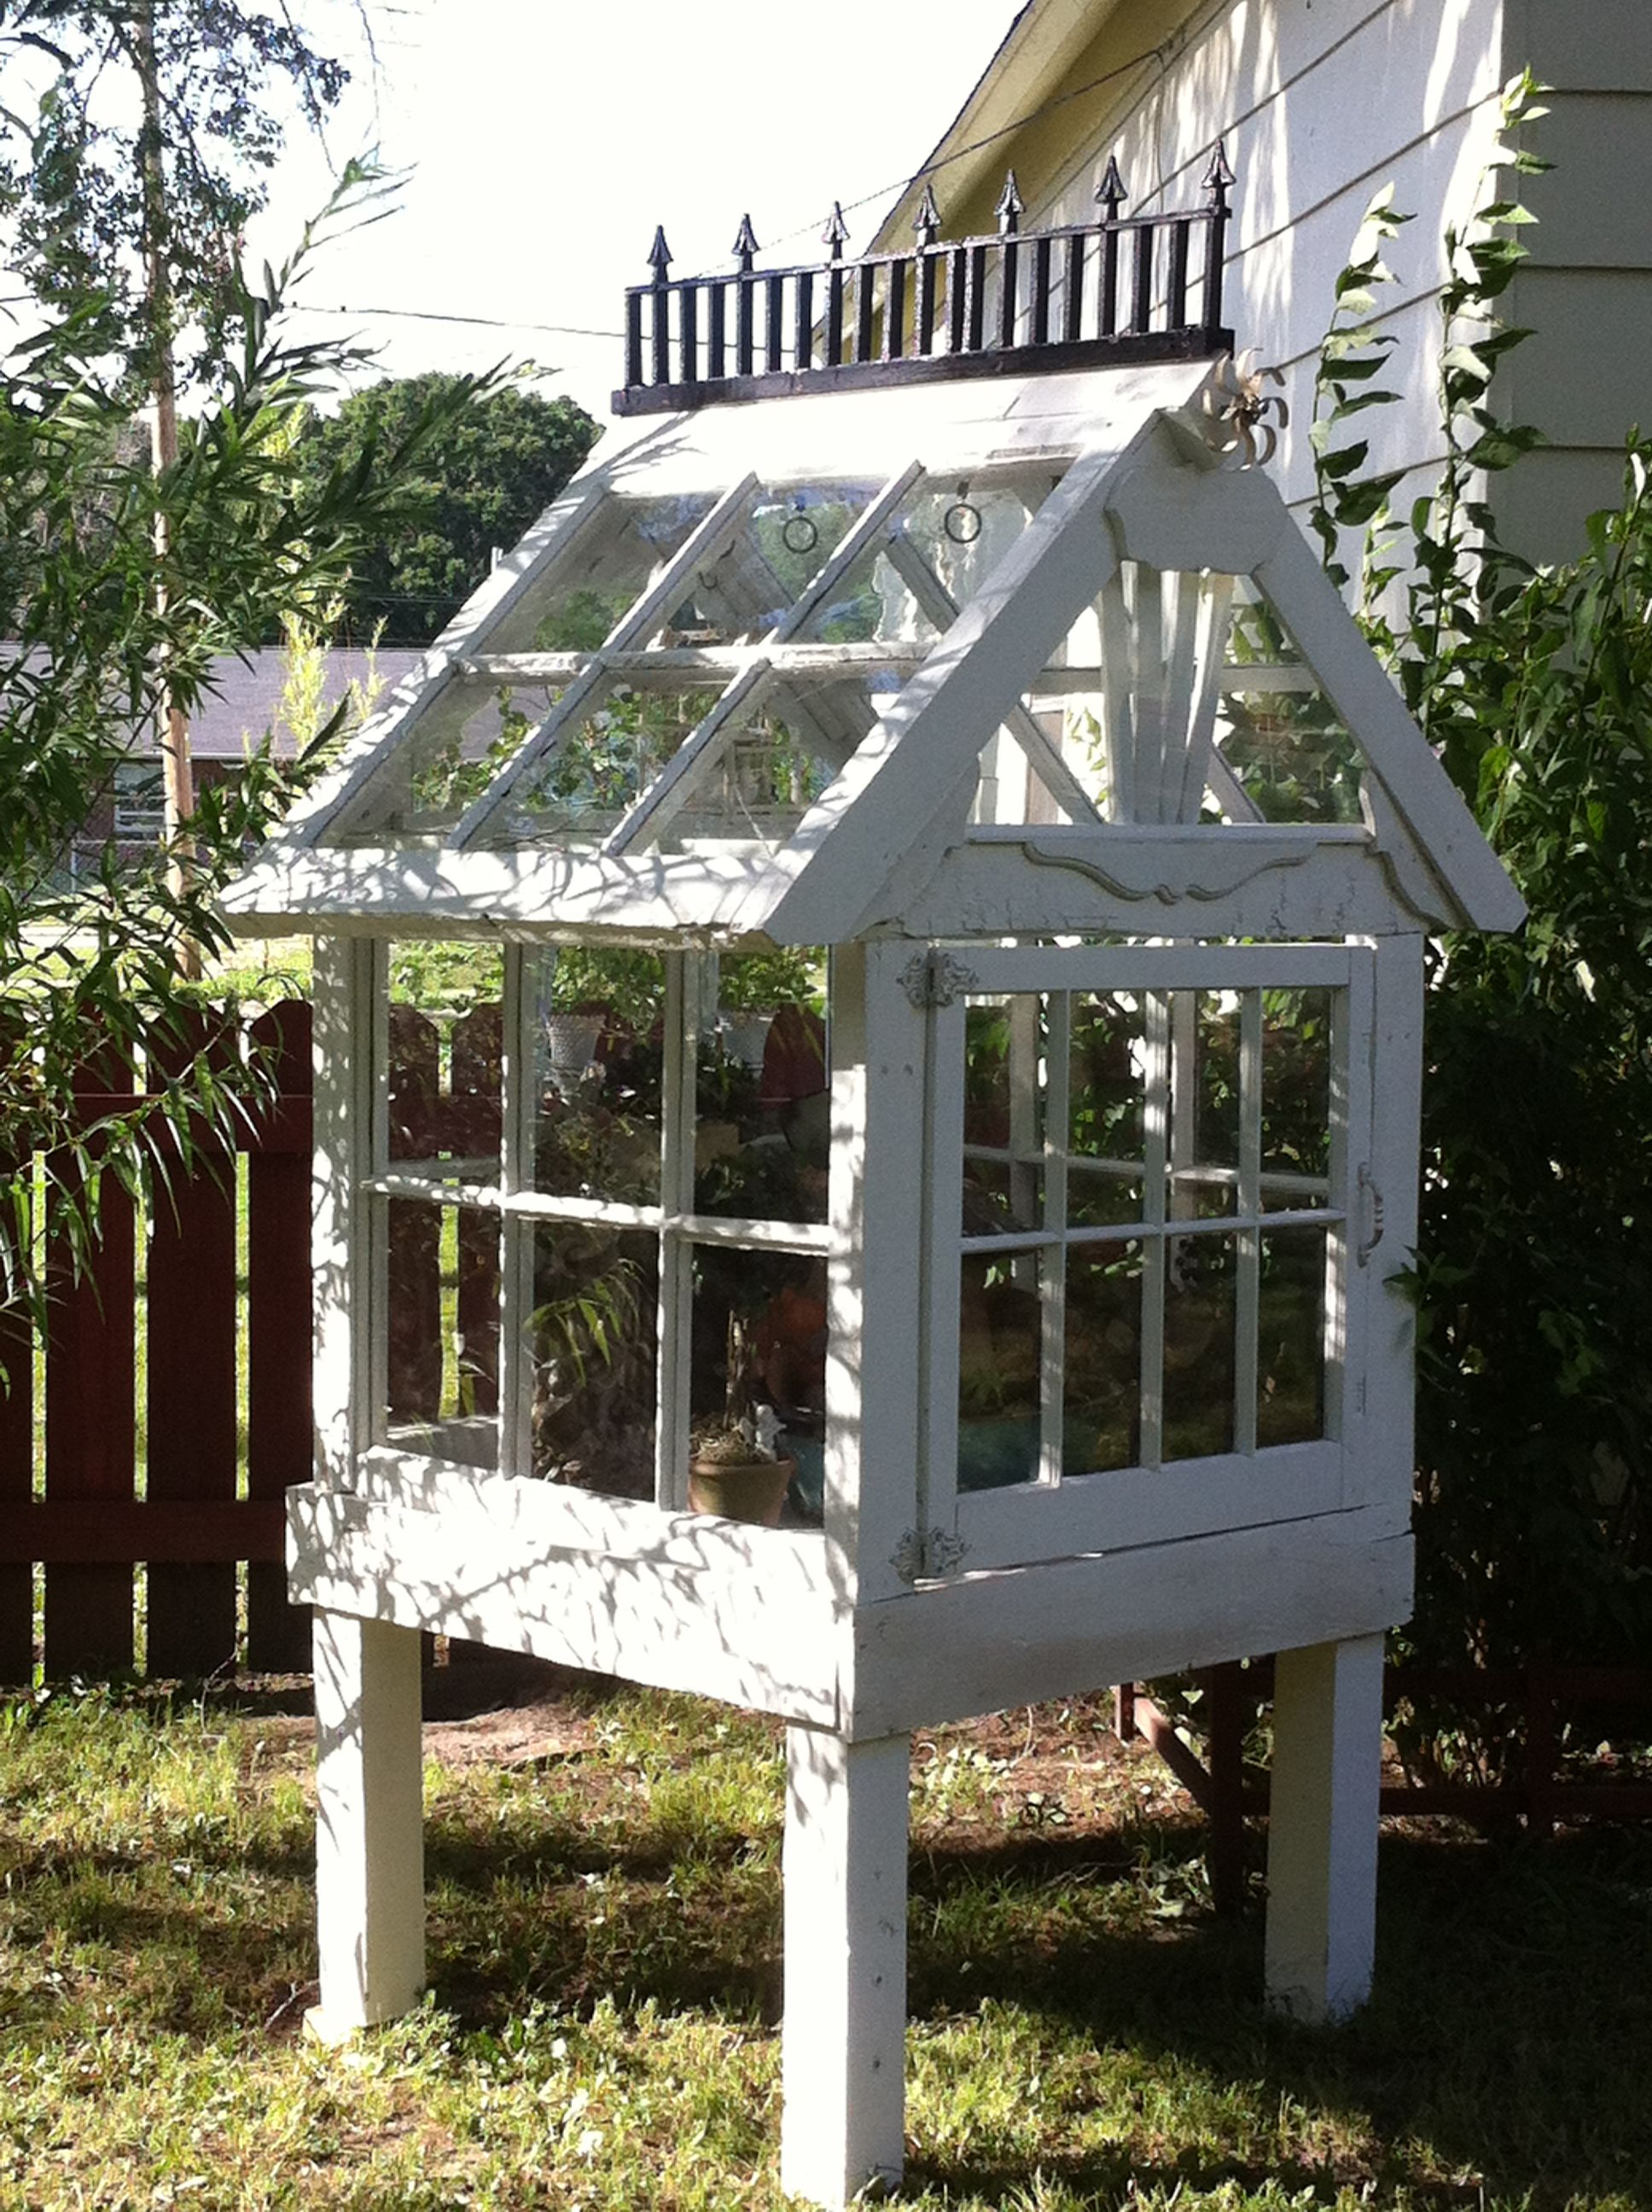 Small victorian greenhouse i made completely from reclaimed materials i used an old bunk bed a broke chair old windows plastic garden edging